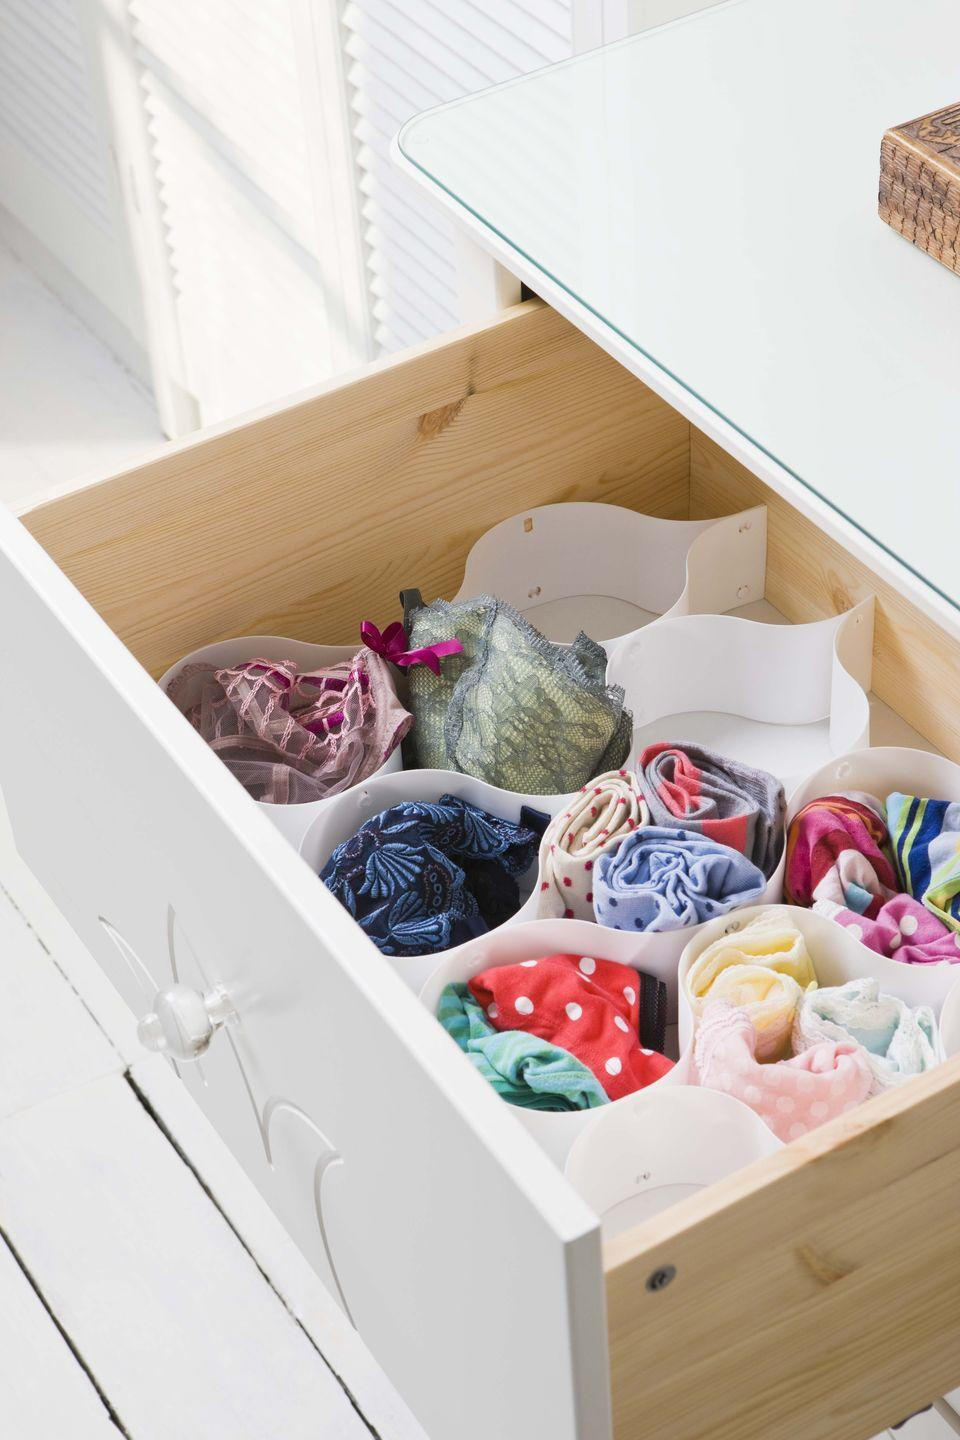 """<p>Messy environments have been linked to anxiety and stress, so organizing your cluttered closet or desk may bring calm. And if you donate what you don't need, it can amplify the boost.</p><p><strong>RELATED:</strong> <a href=""""https://www.womansday.com/home/organizing-cleaning/g2801/life-changing-organization-tips/"""" rel=""""nofollow noopener"""" target=""""_blank"""" data-ylk=""""slk:Pro Organizers Share Their Best Tips for Organizing Your Home"""" class=""""link rapid-noclick-resp"""">Pro Organizers Share Their Best Tips for Organizing Your Home</a></p>"""